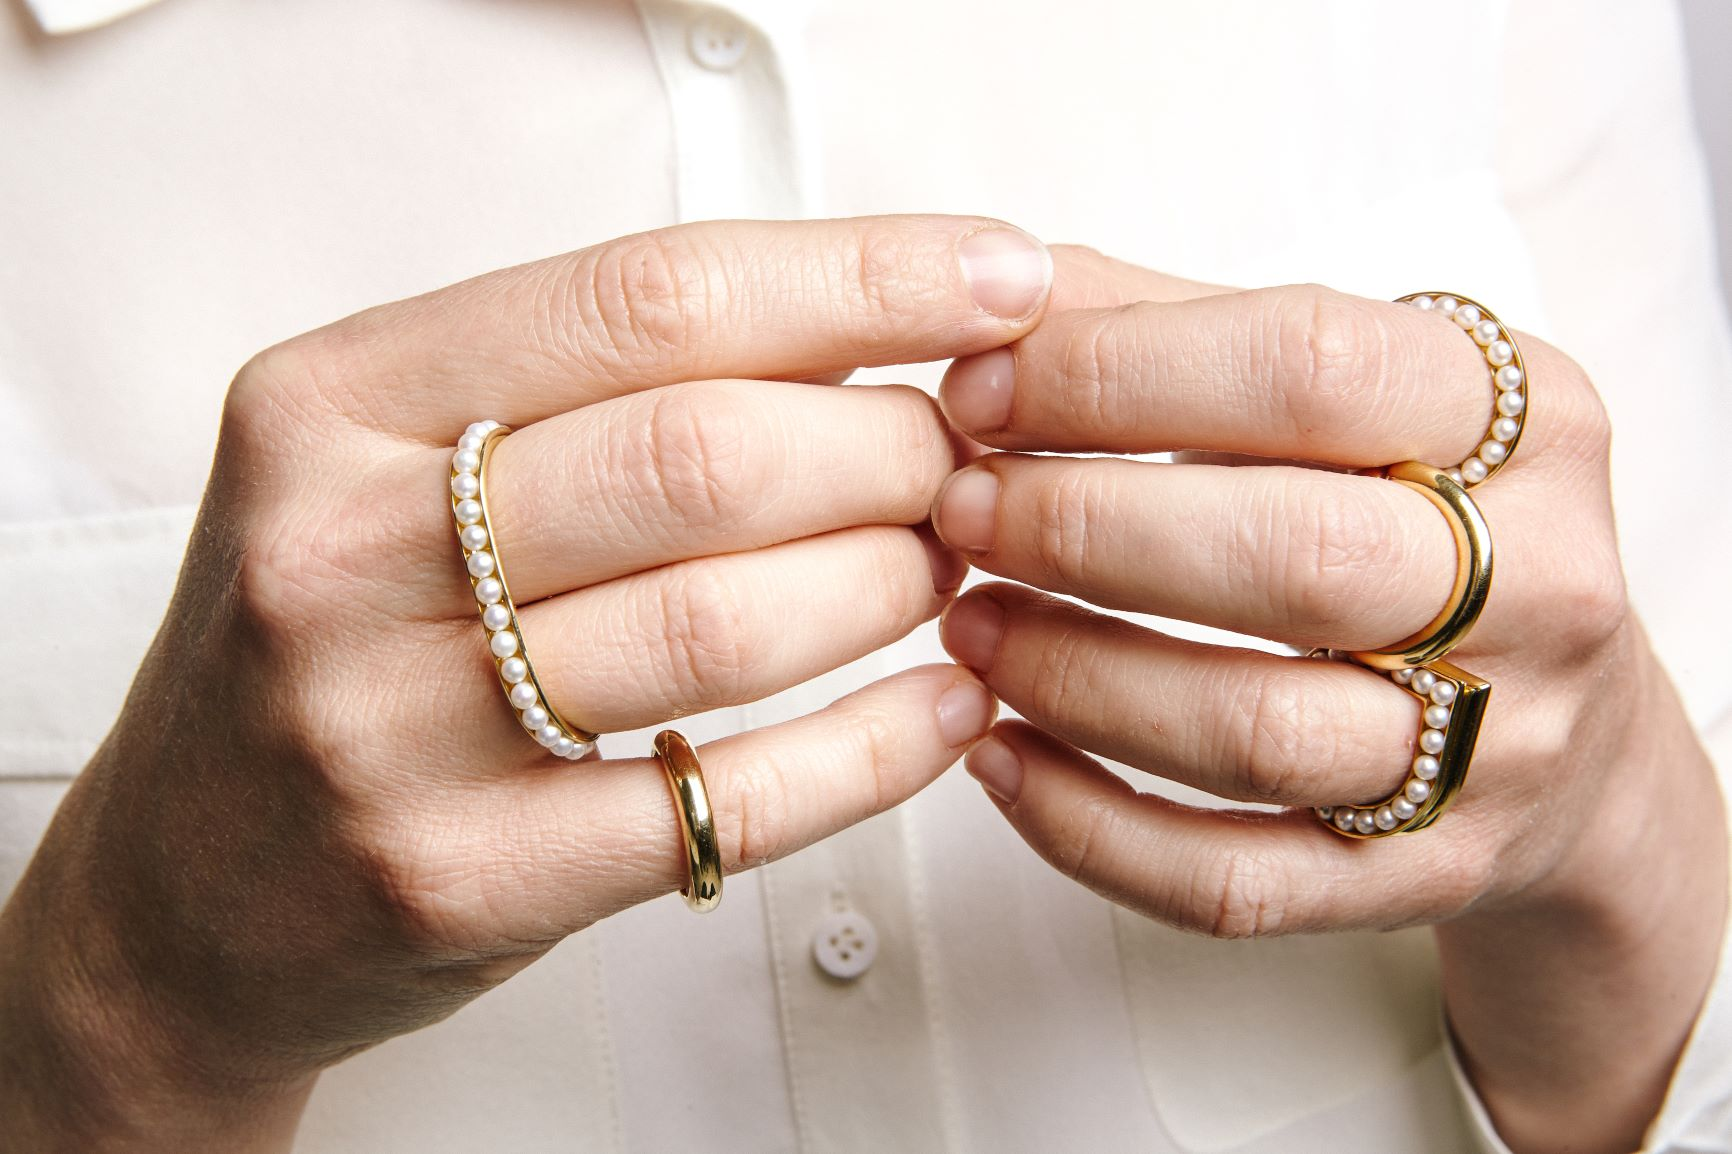 Essence Rings, (Image Courtesy of Melanie Georgacopoulos)